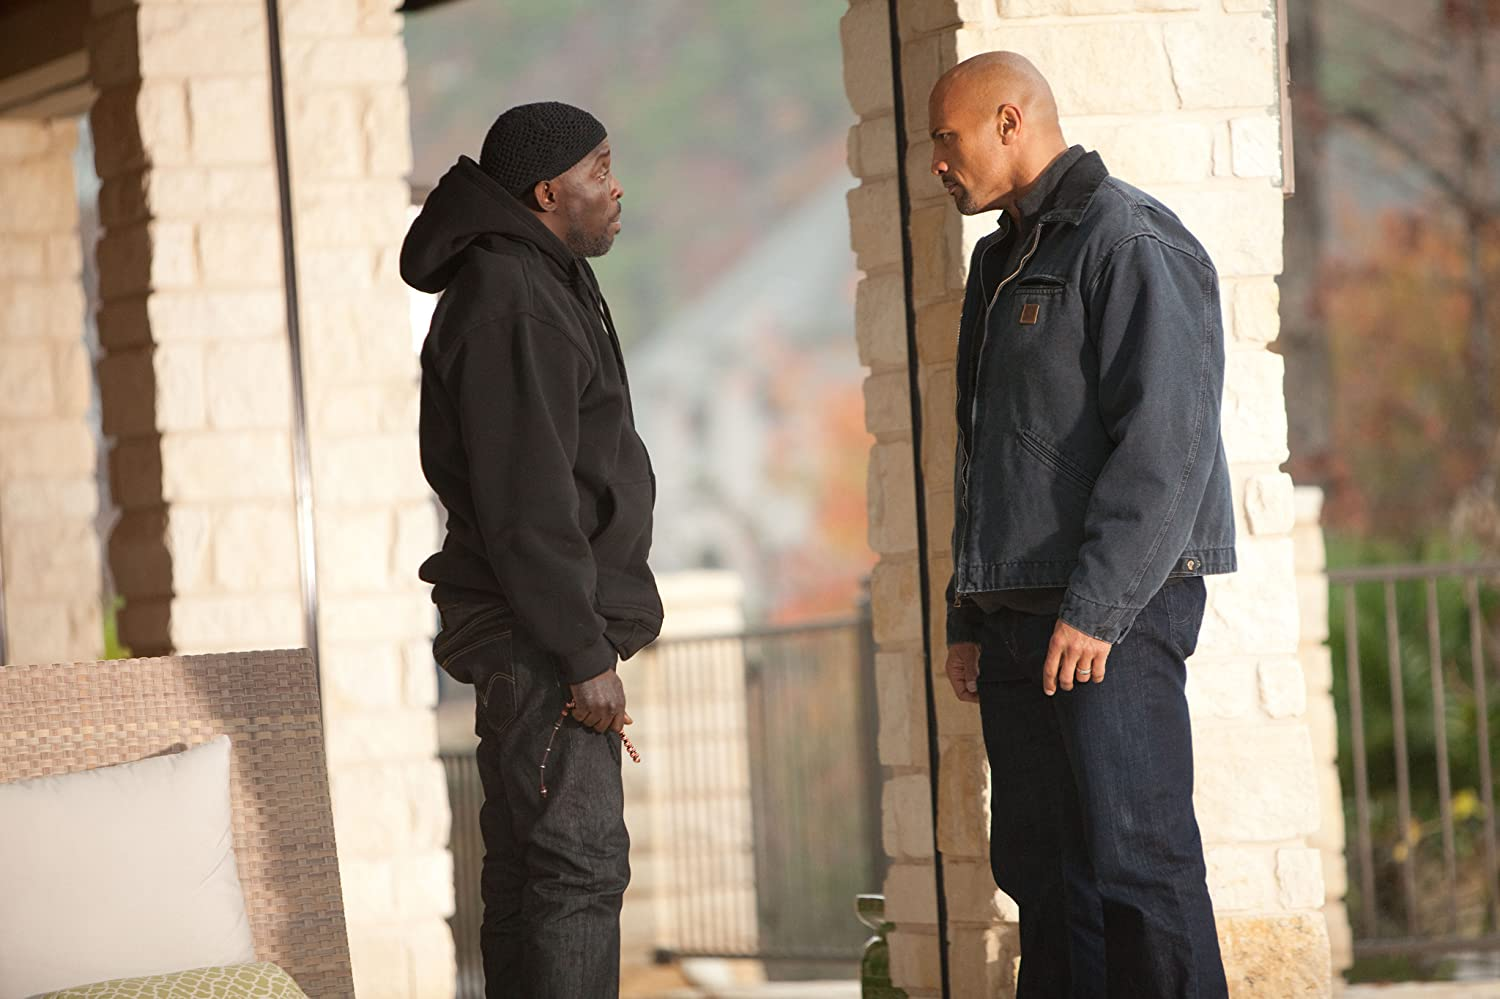 Dwayne Johnson and Michael Kenneth Williams in Snitch (2013)